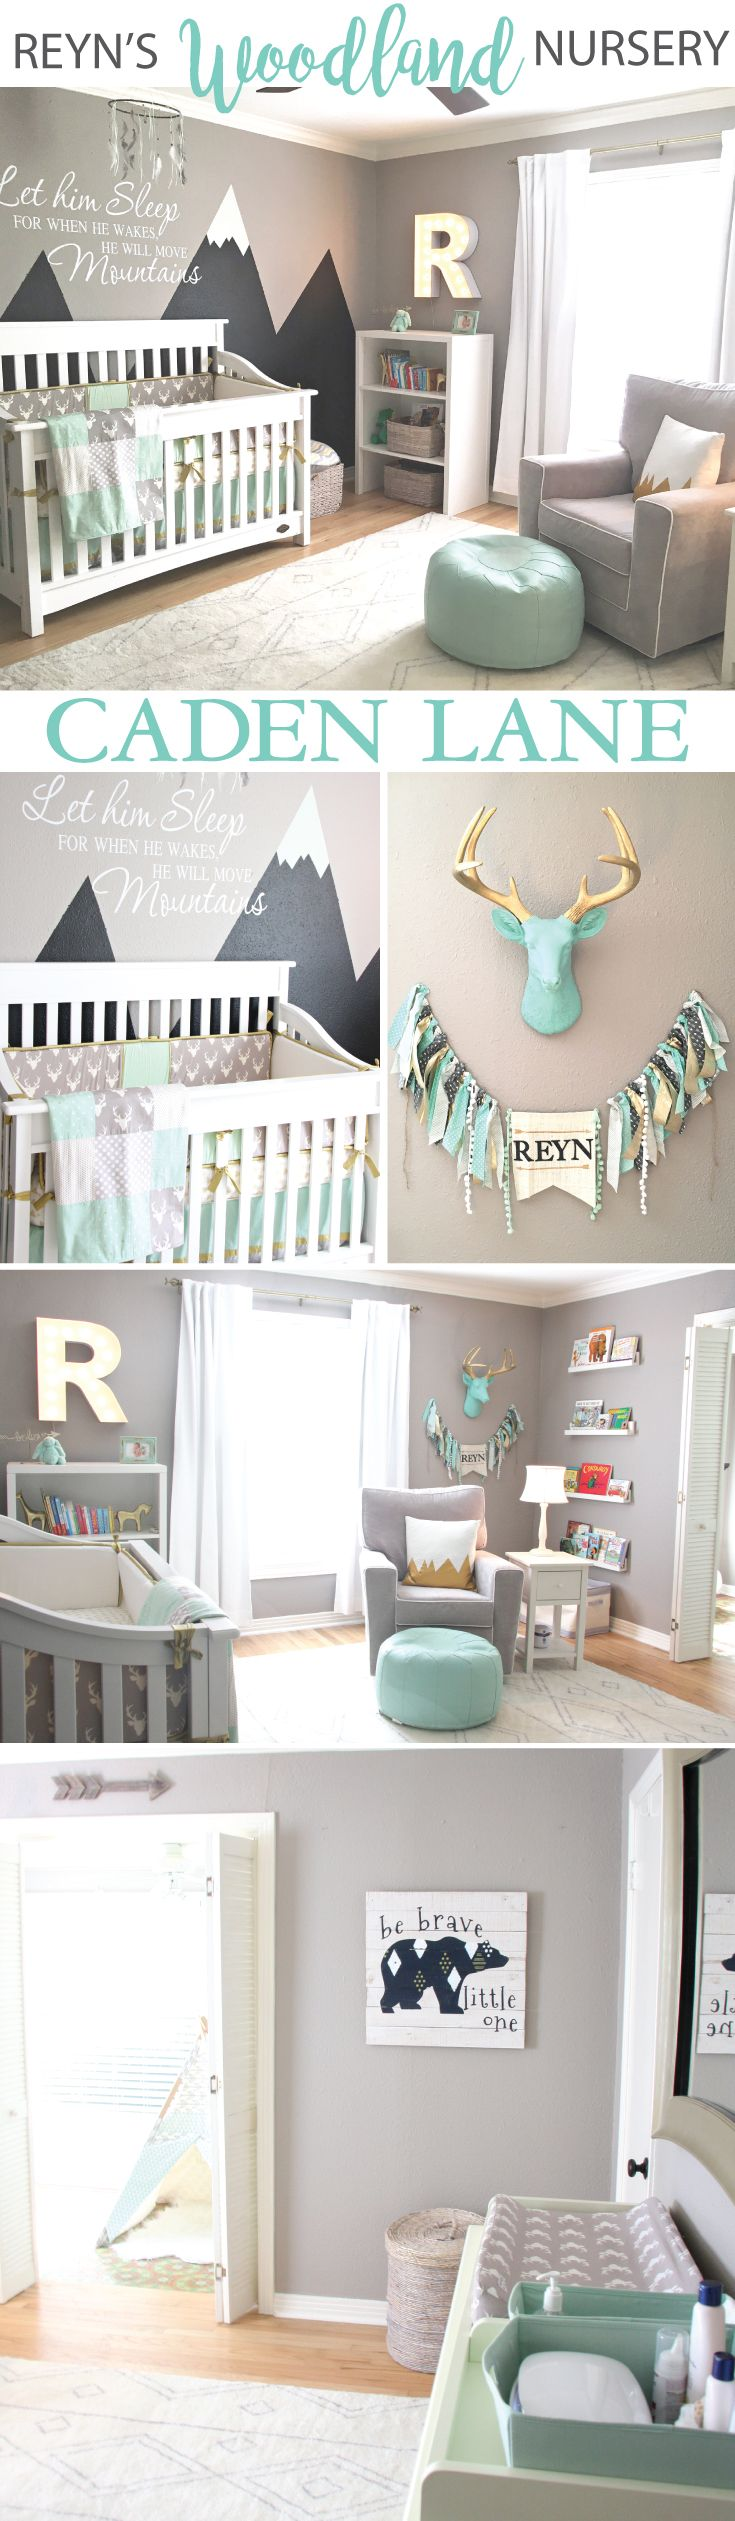 Baby boy room decor pinterest - Reyn S Rocky Mountain Retreat Arrow Nurserynursery